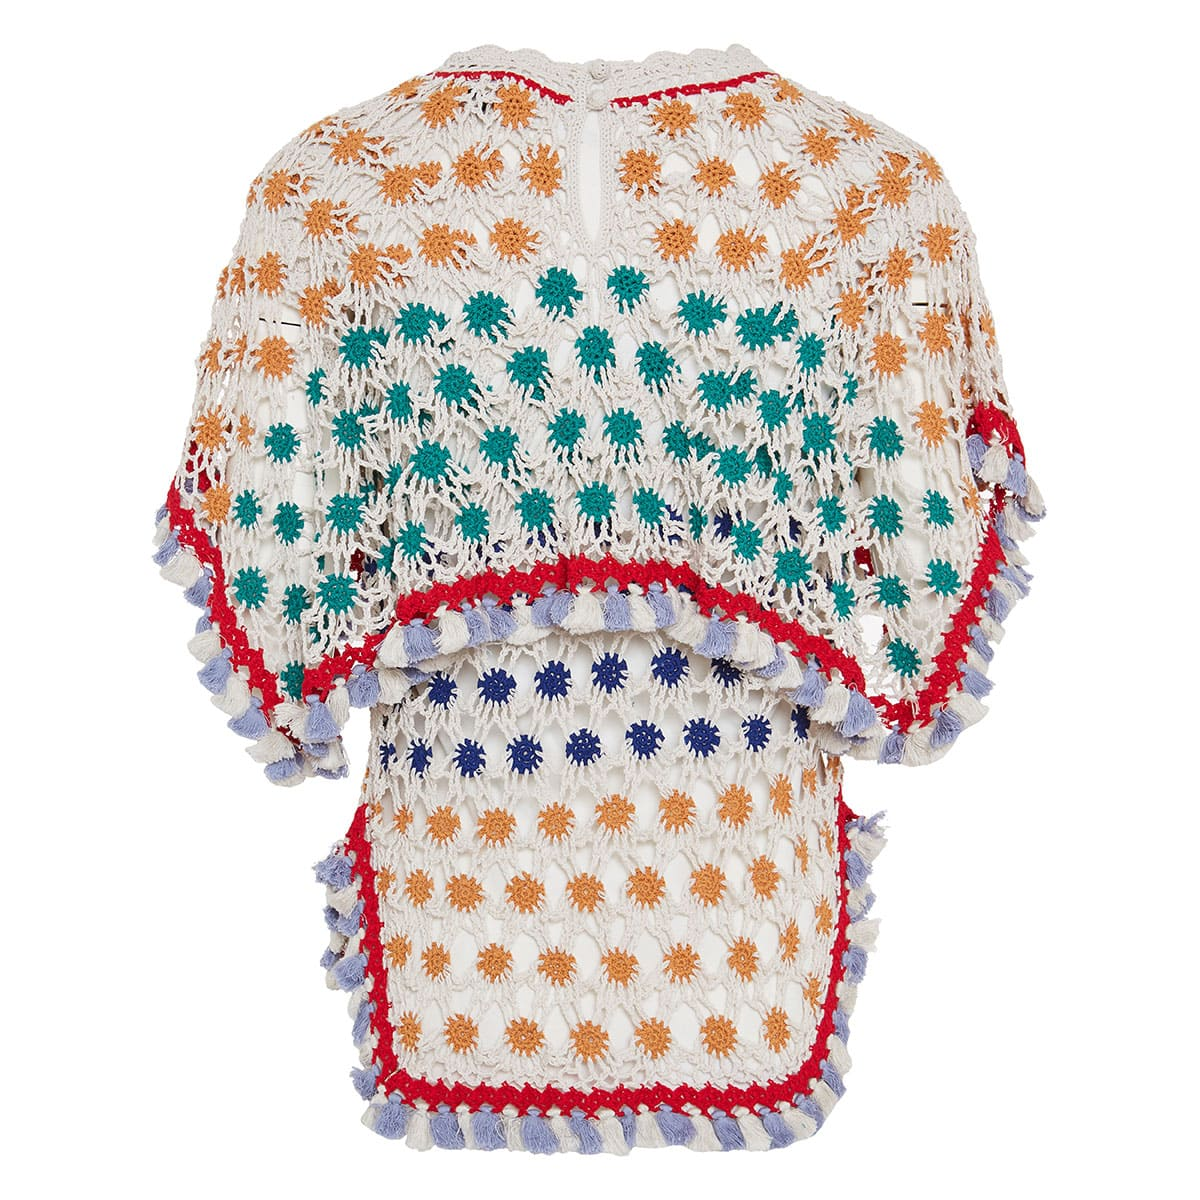 Crochet-knitted blouse